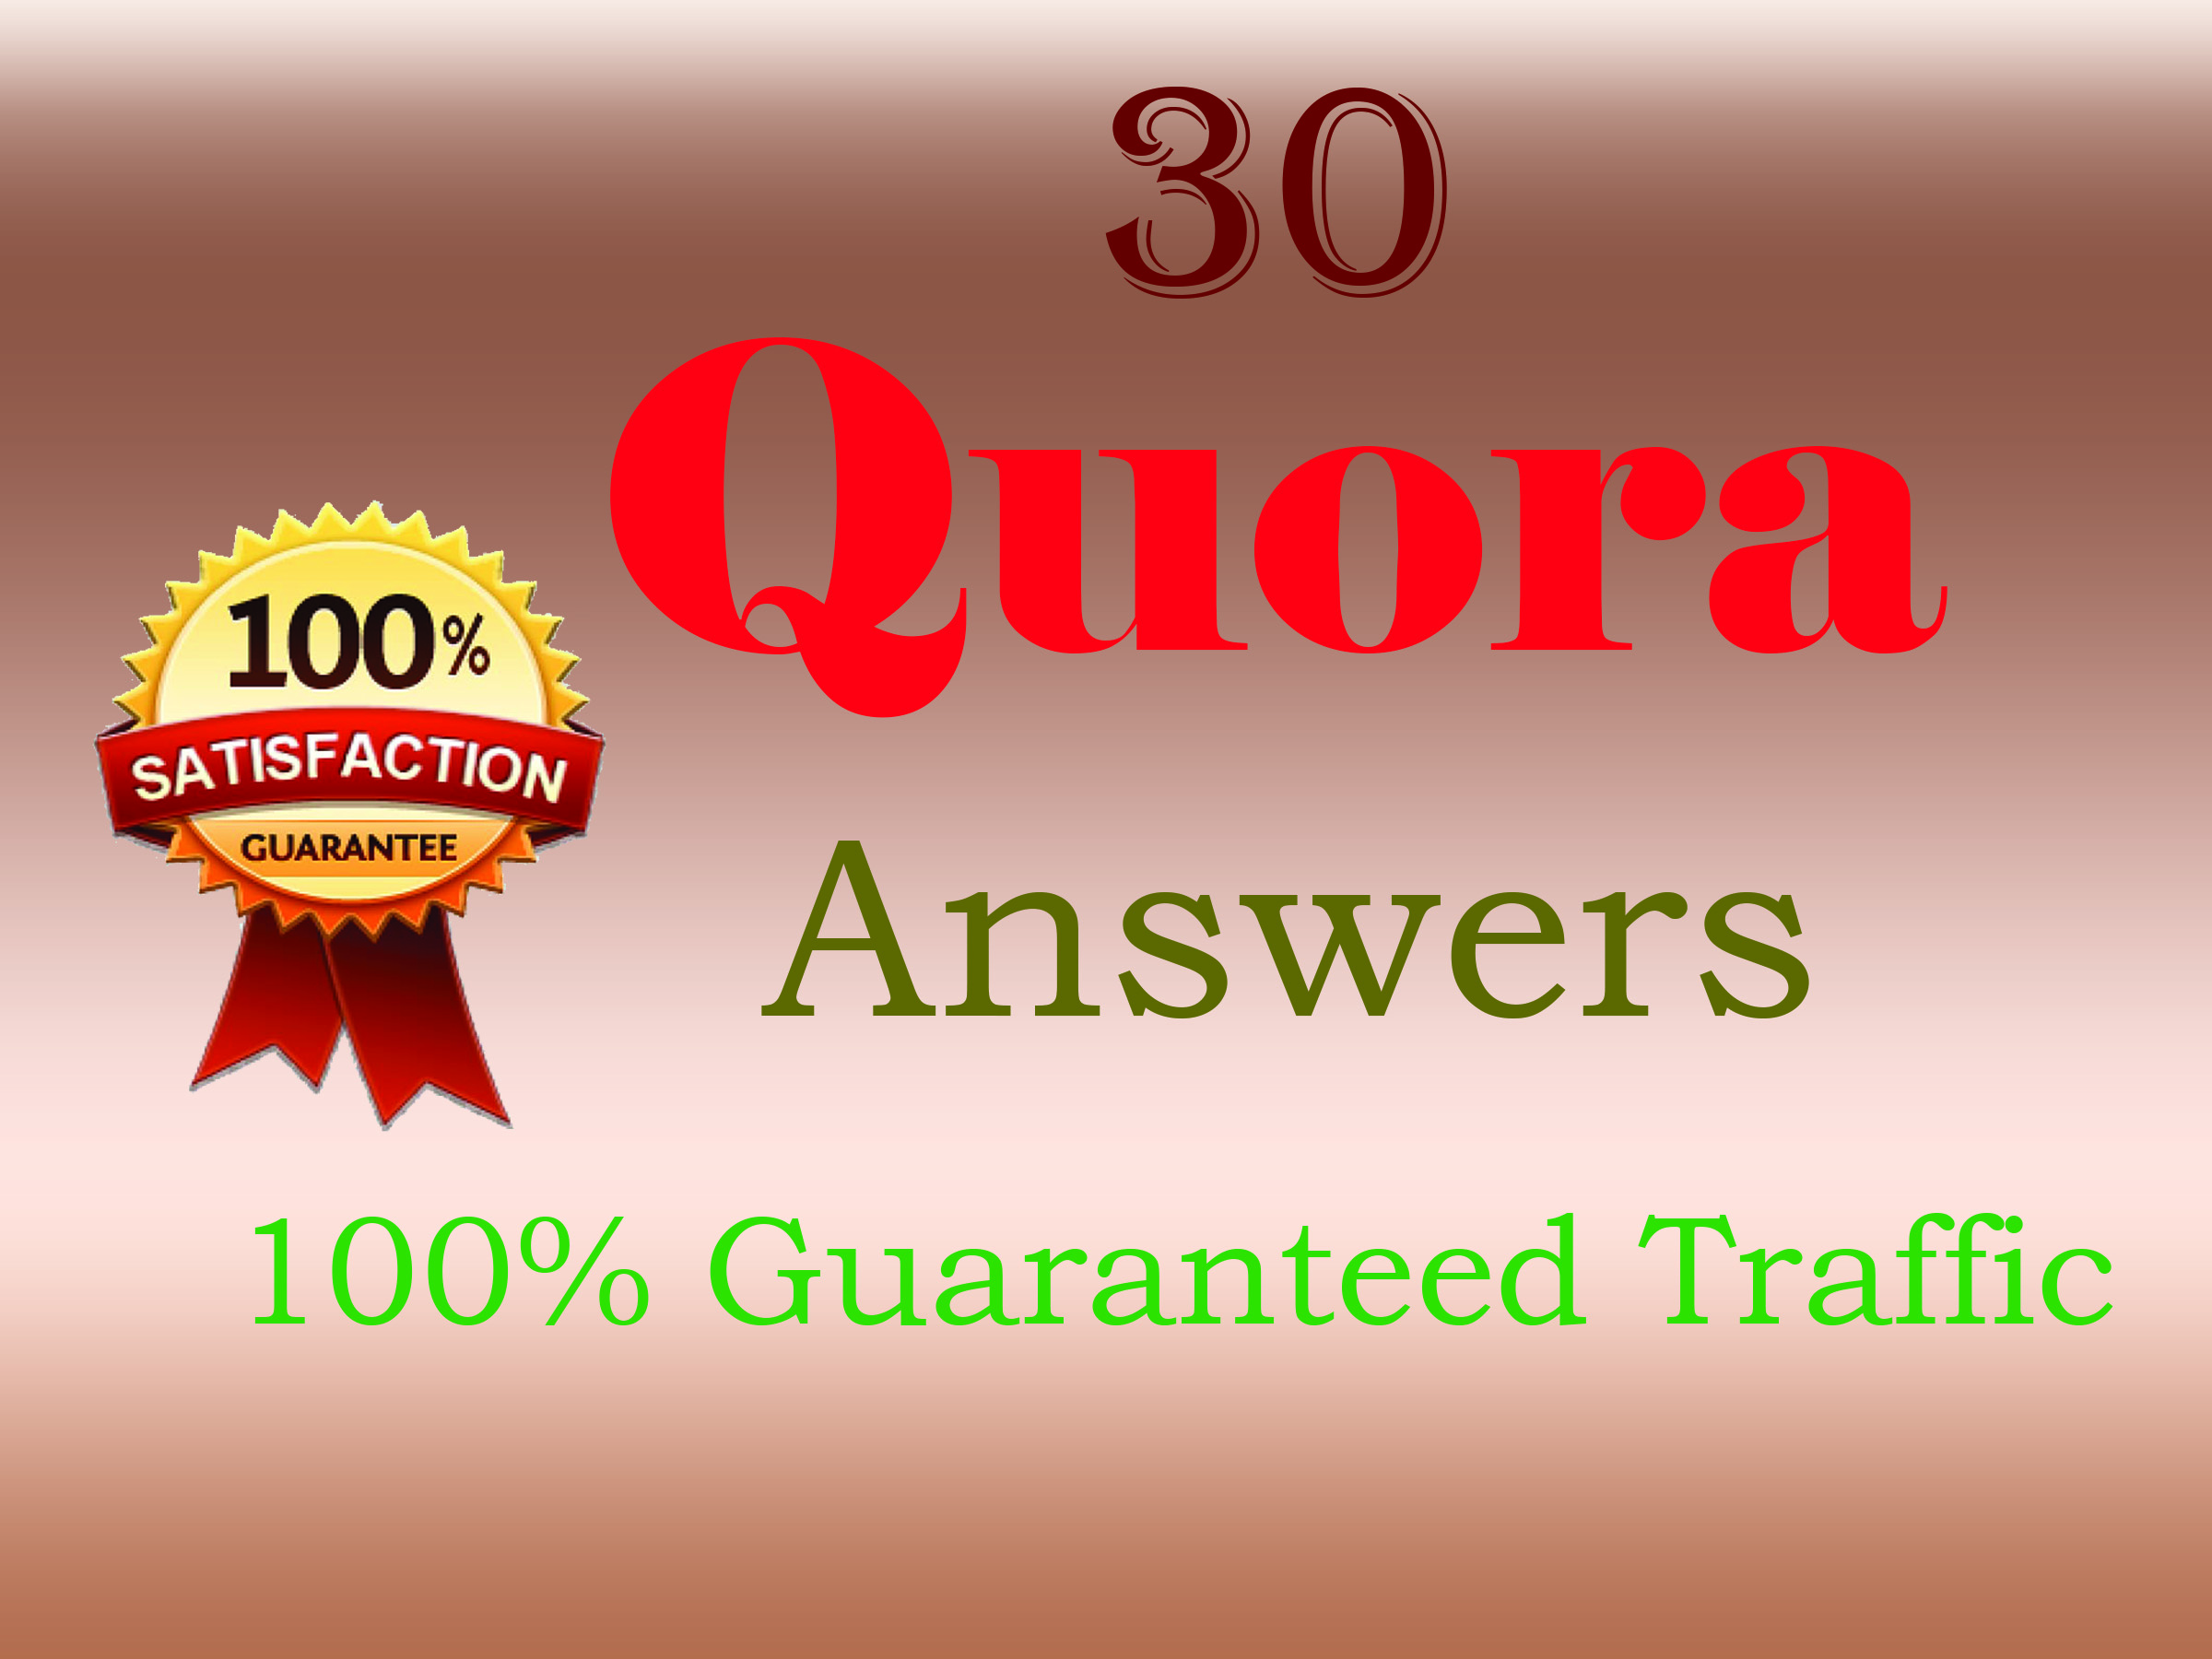 Offer 30 quora answers for guranteed targeted traffic